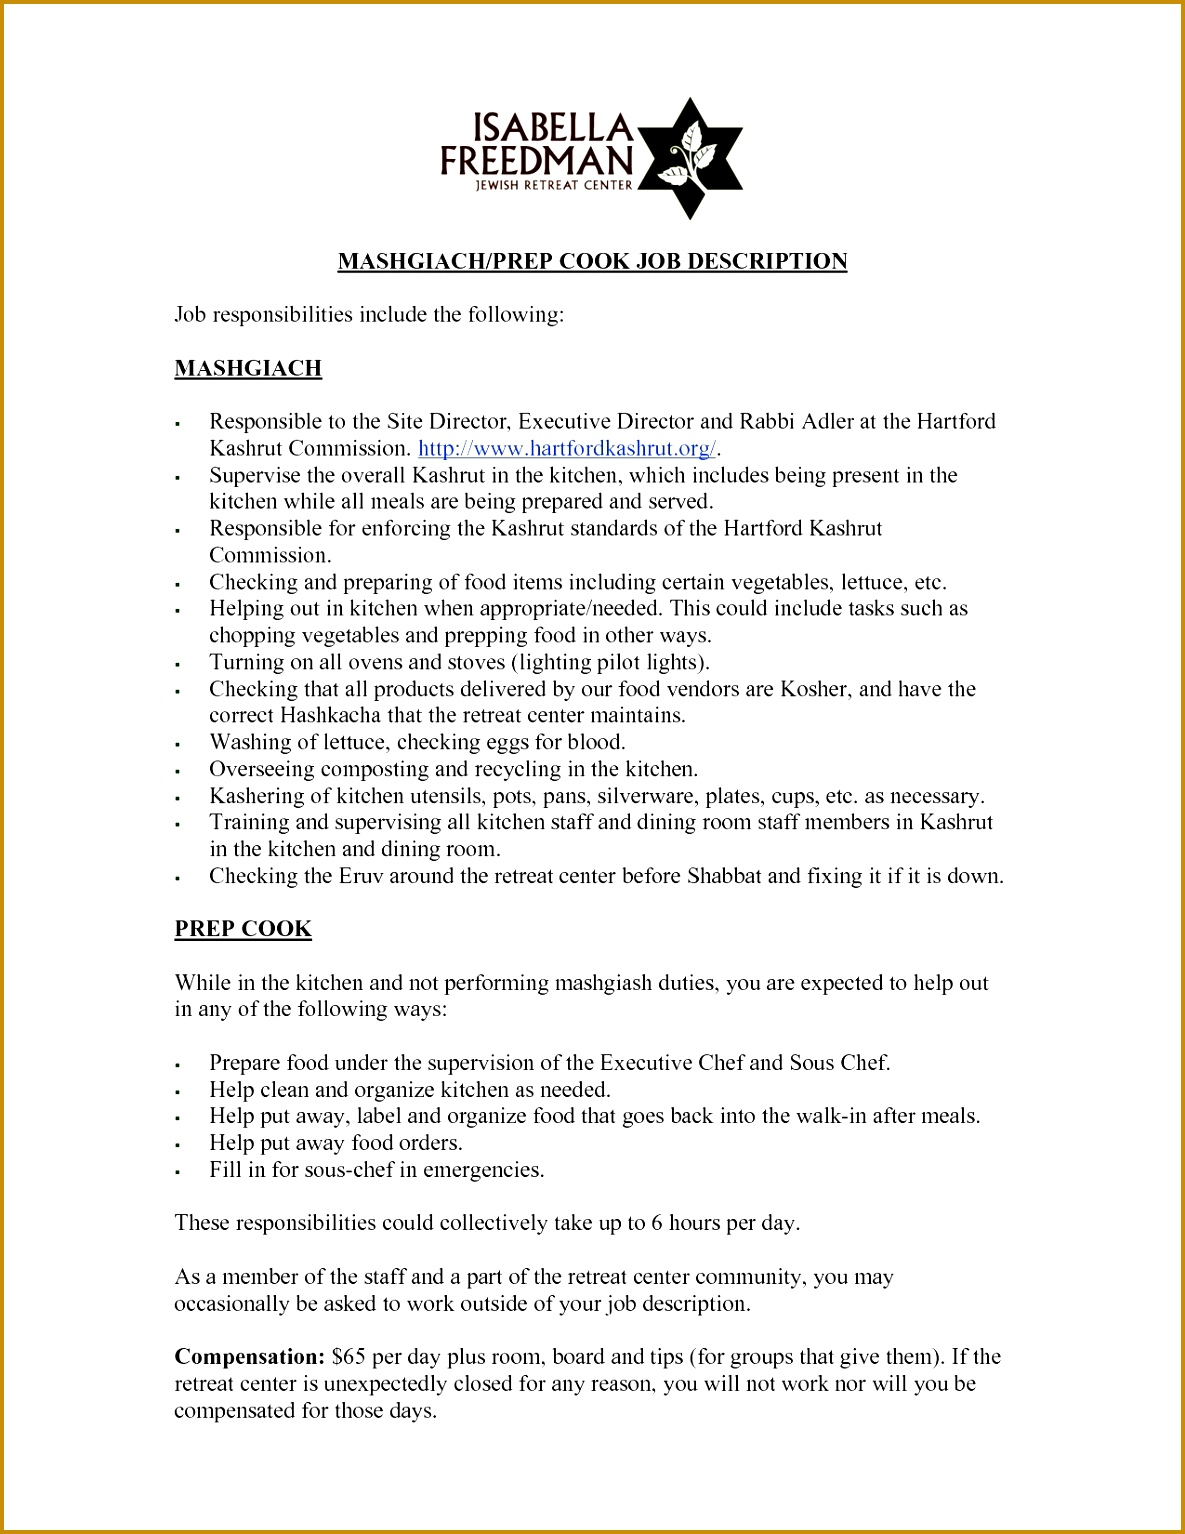 Resume Doc Template Luxury Resume and Cover Letter Template Fresh Od Specialist Sample Resume 15341185